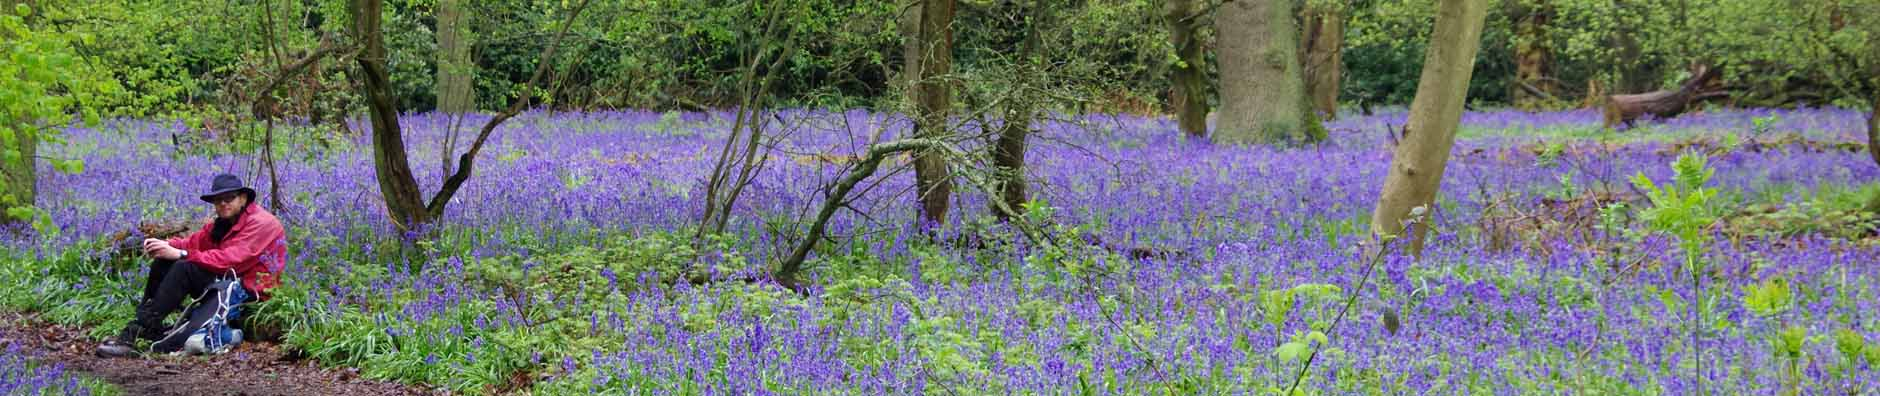 Bluebell walk - Apr 2018